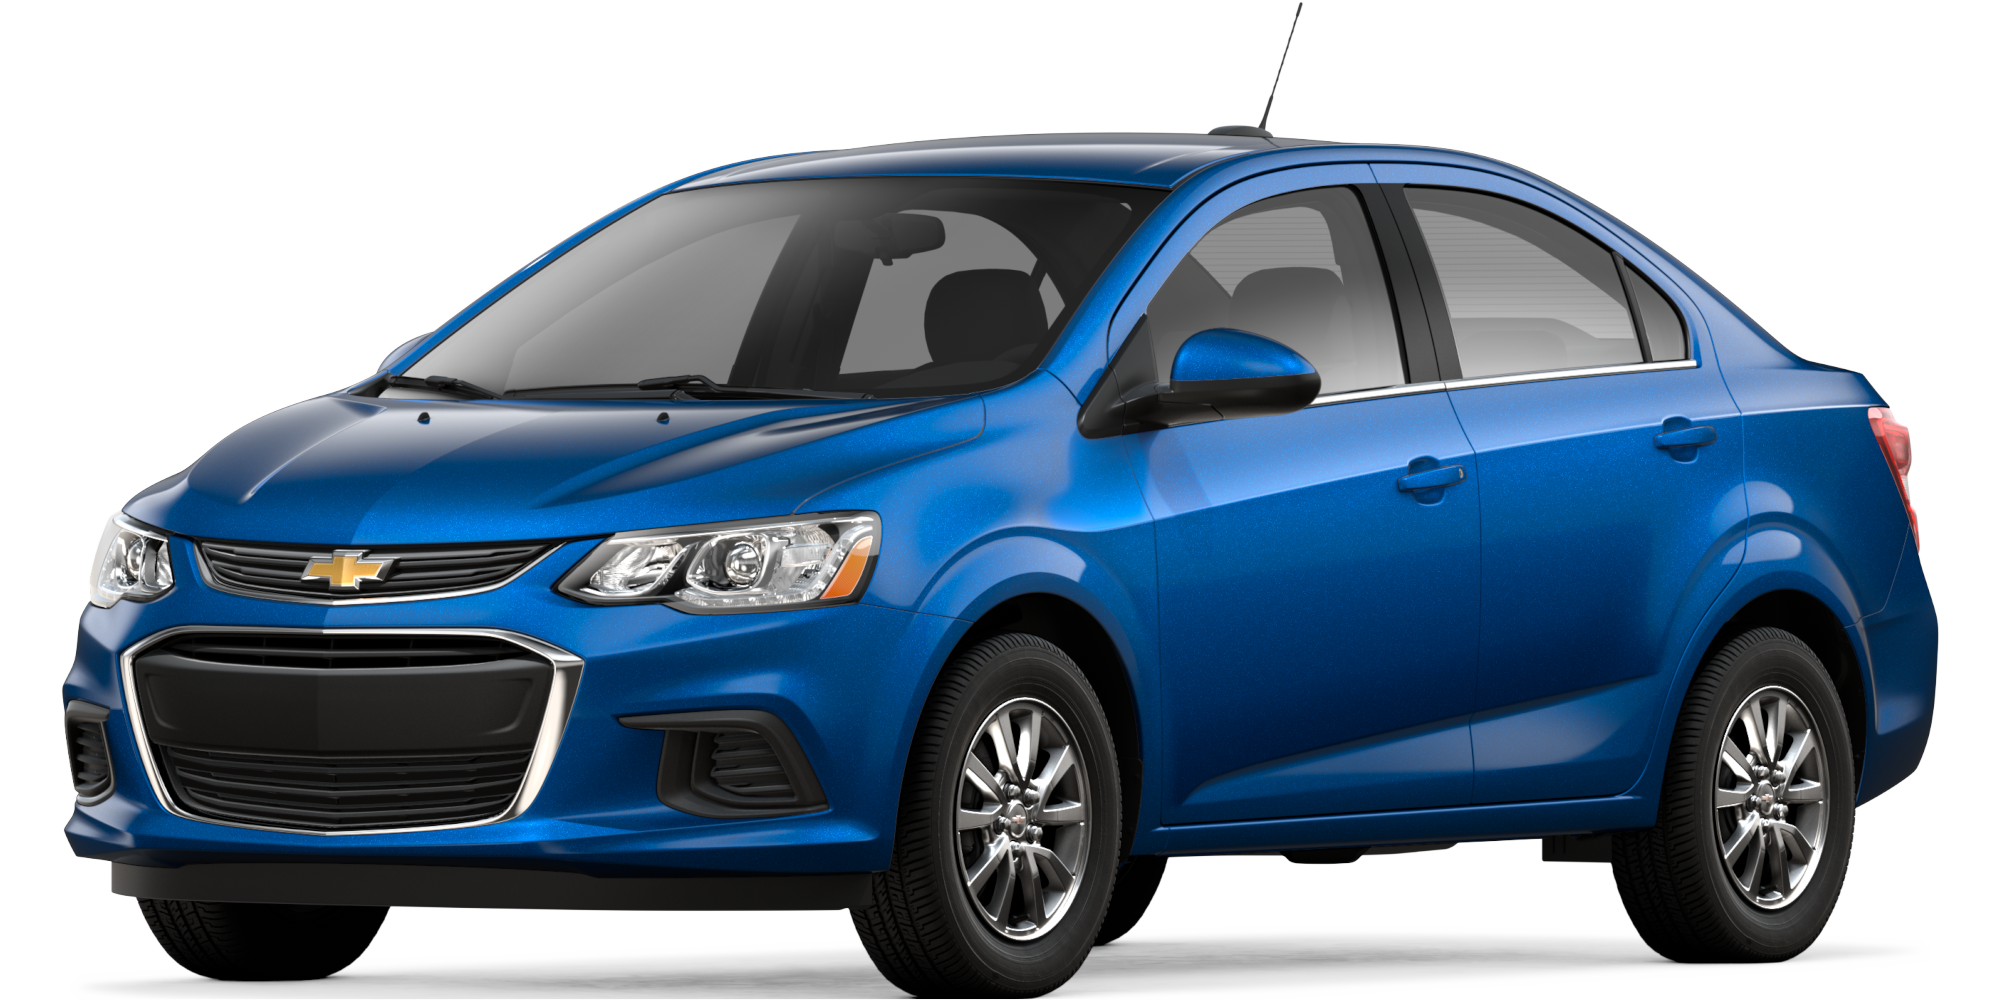 Chevrolet Sonic Owners Manual: Buying New Tires